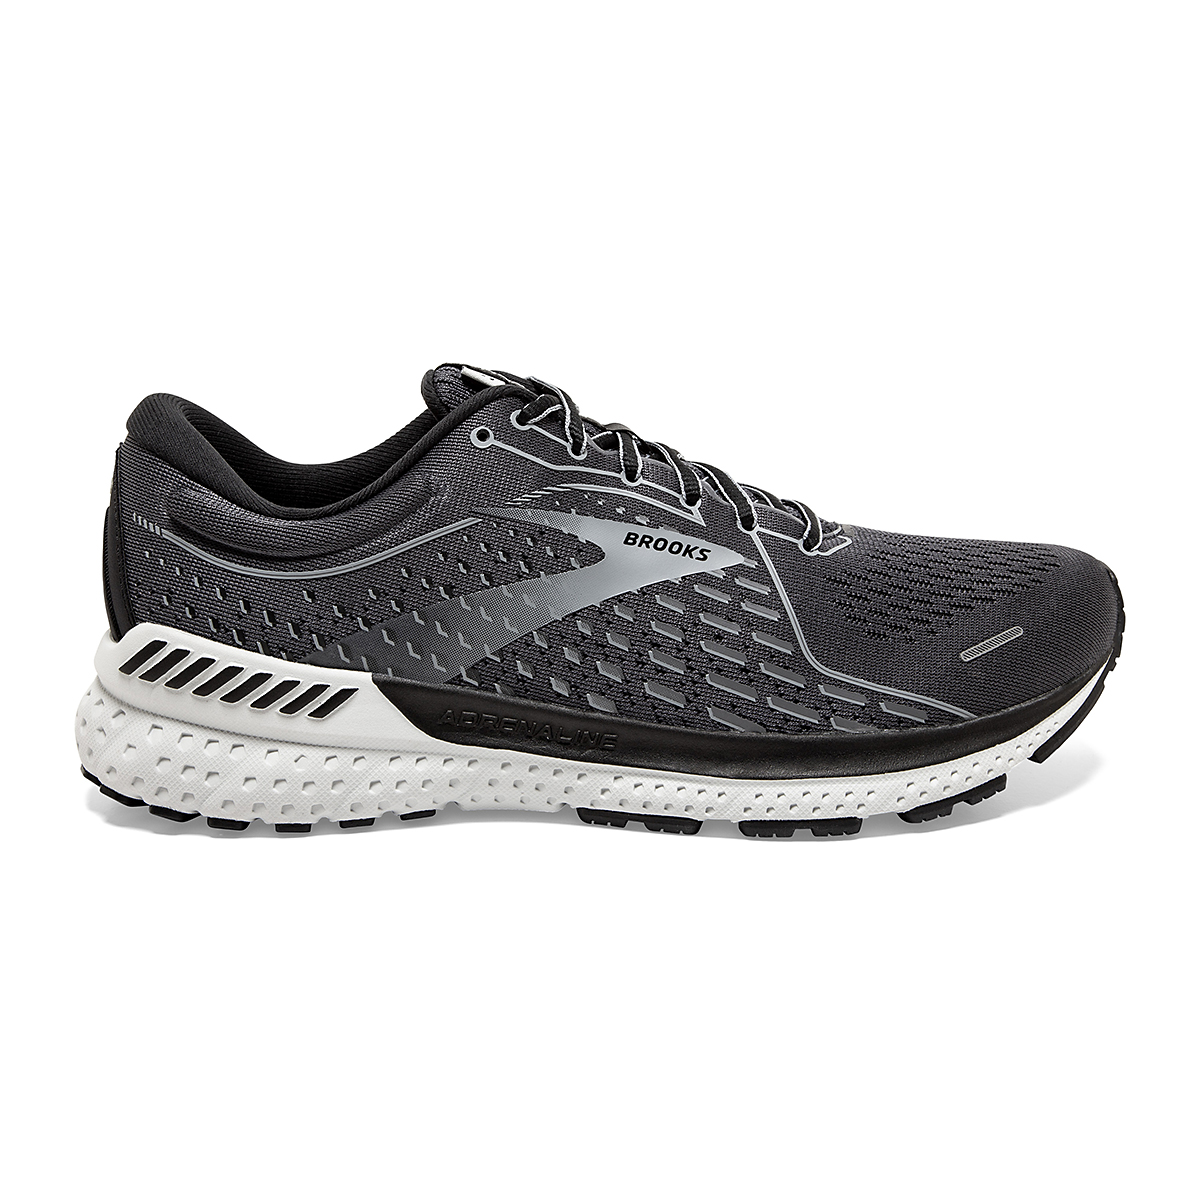 Men's Brooks Adrenaline GTS 21 Running Shoe - Color: Blackened Pearl - Size: 7 - Width: Regular, Blackened Pearl, large, image 1